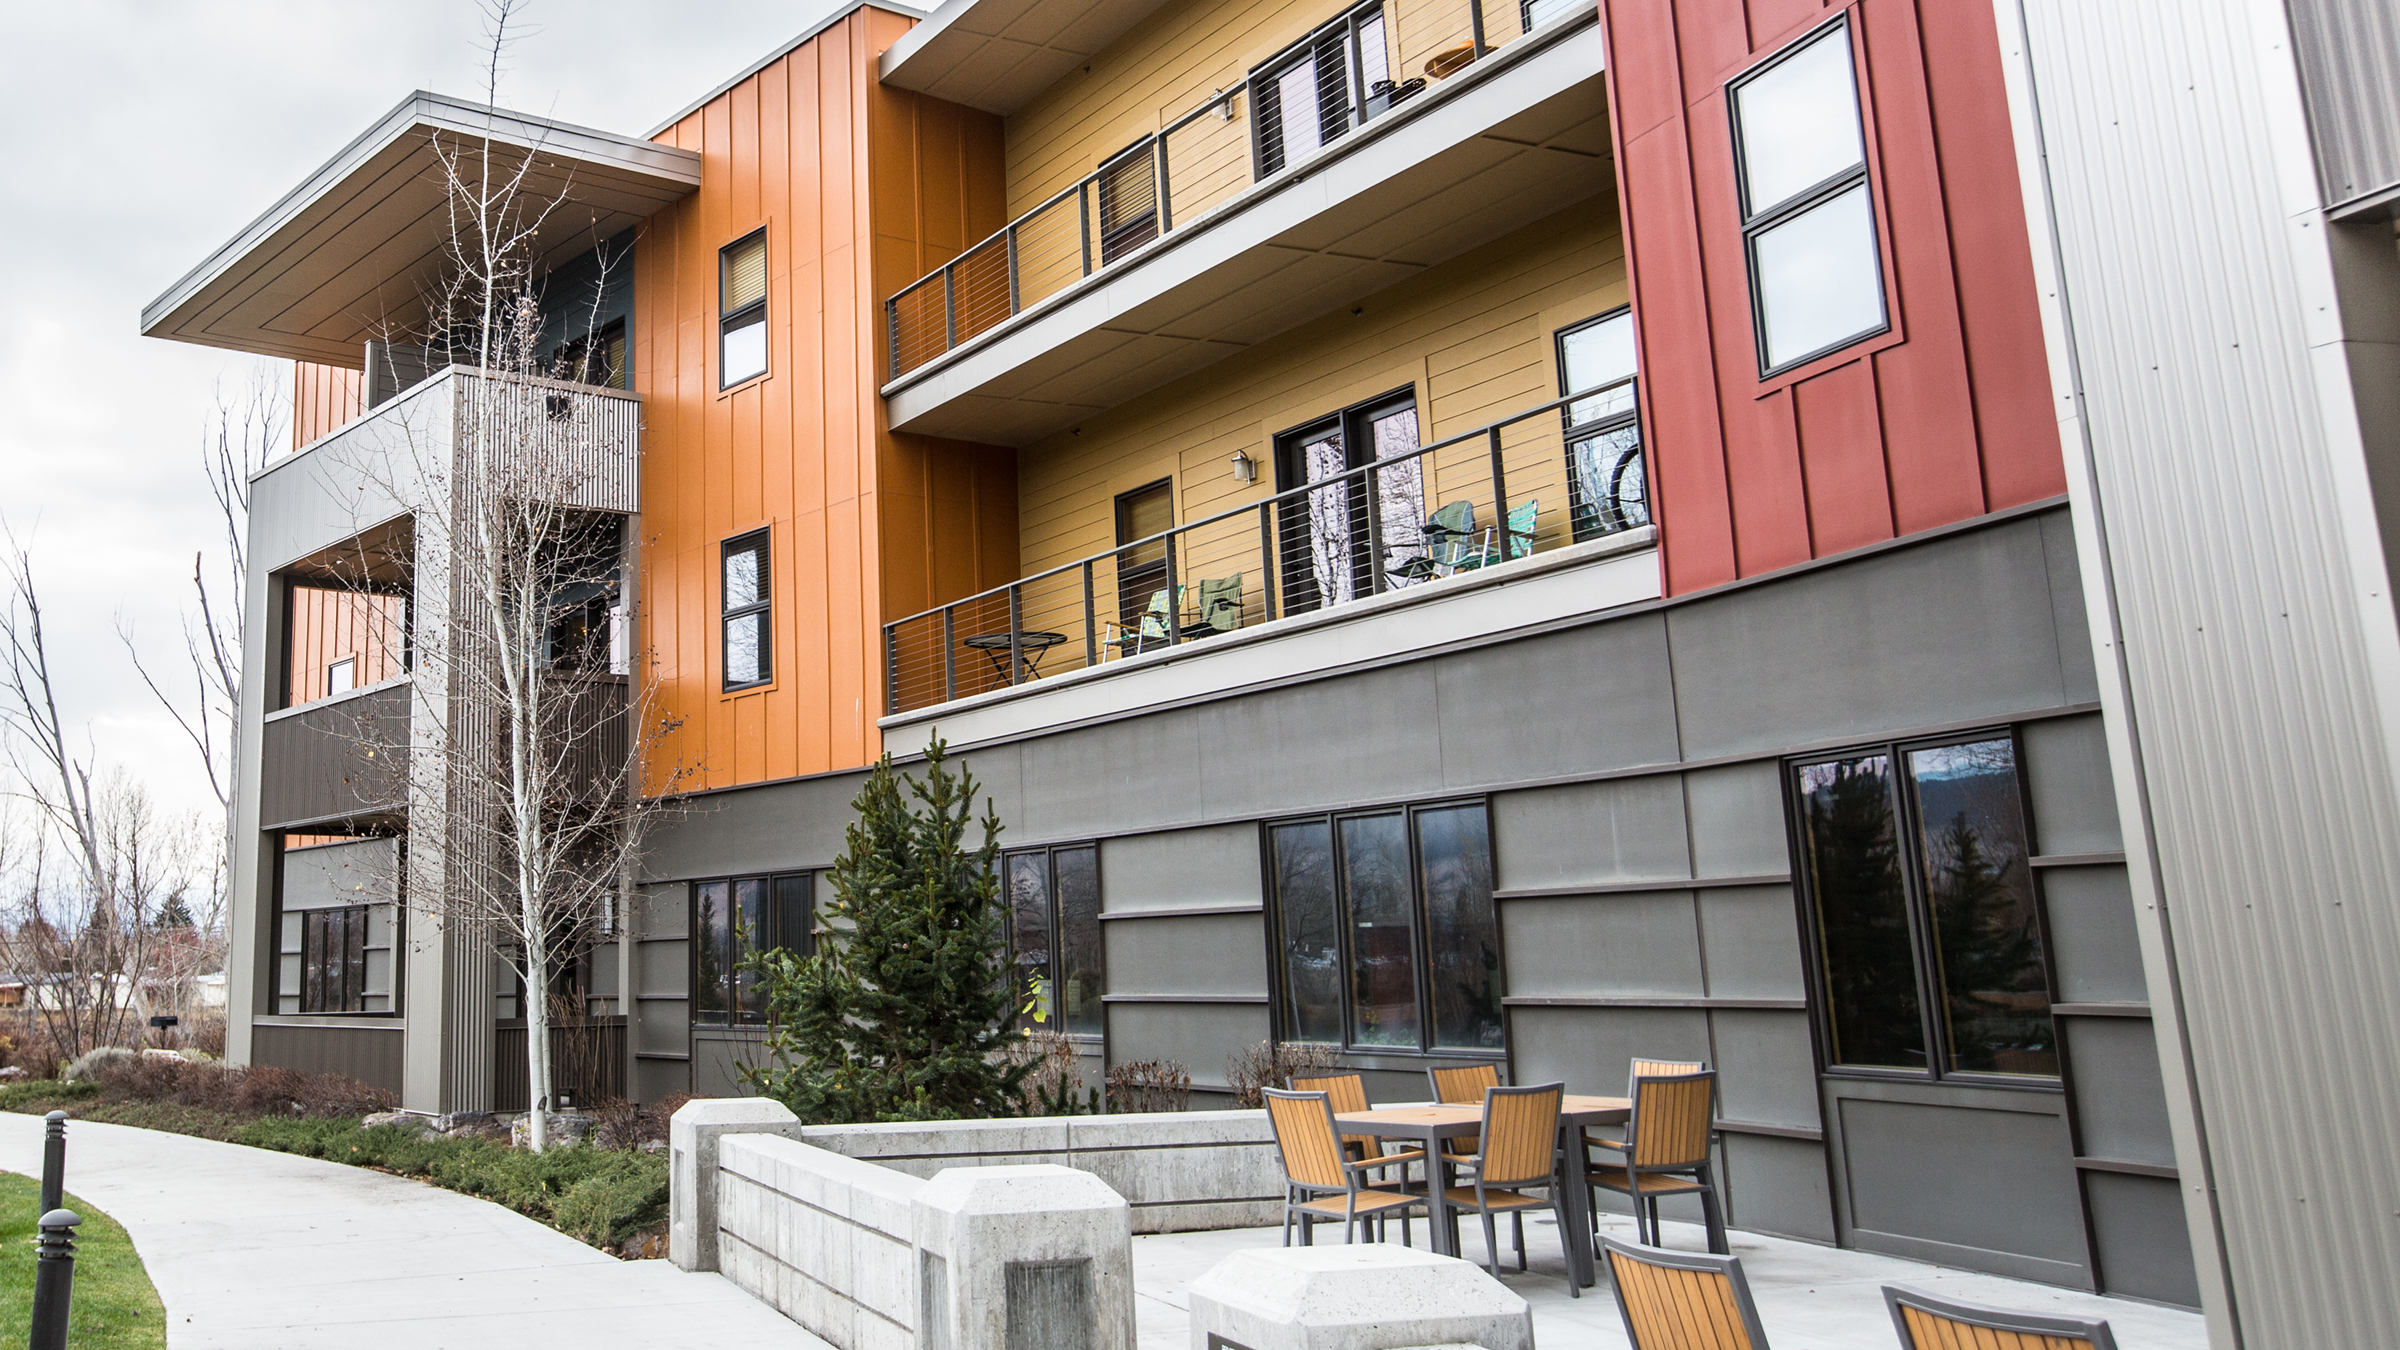 Solstice Apartments, an affordable housing community in Missoula, Mont.